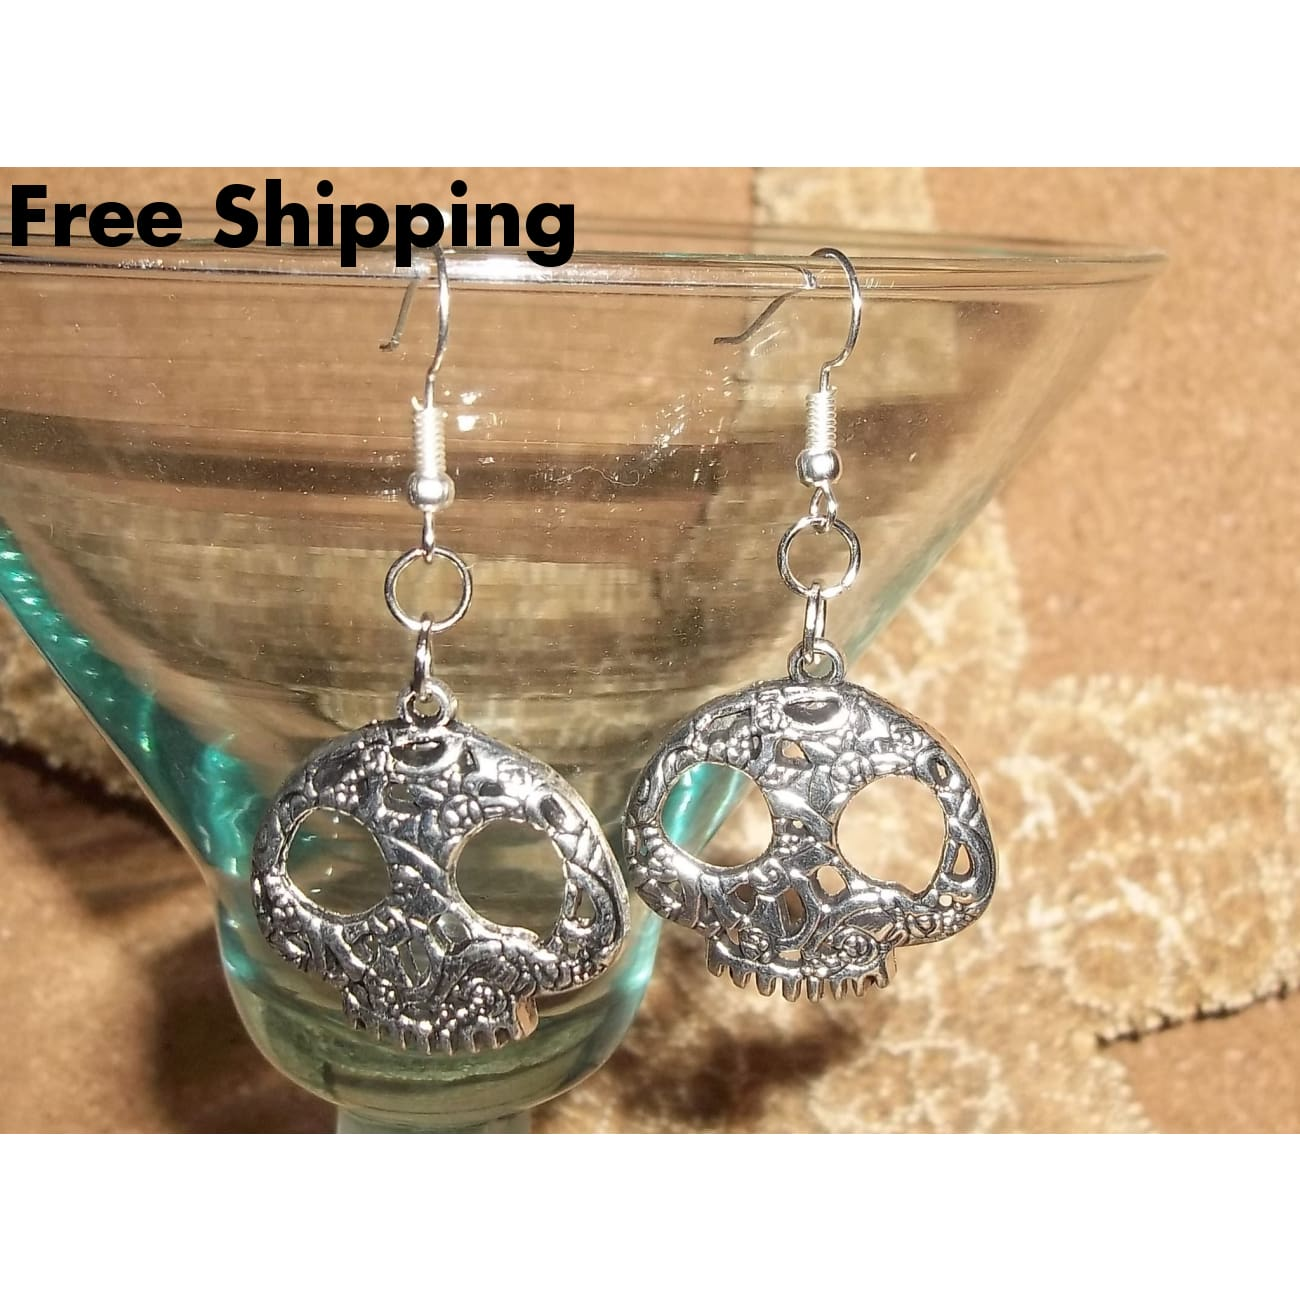 Day Of The Dead Skull Candy Skull Rose Skull Stainless Steel Hand Crafted Earrings - Earrings